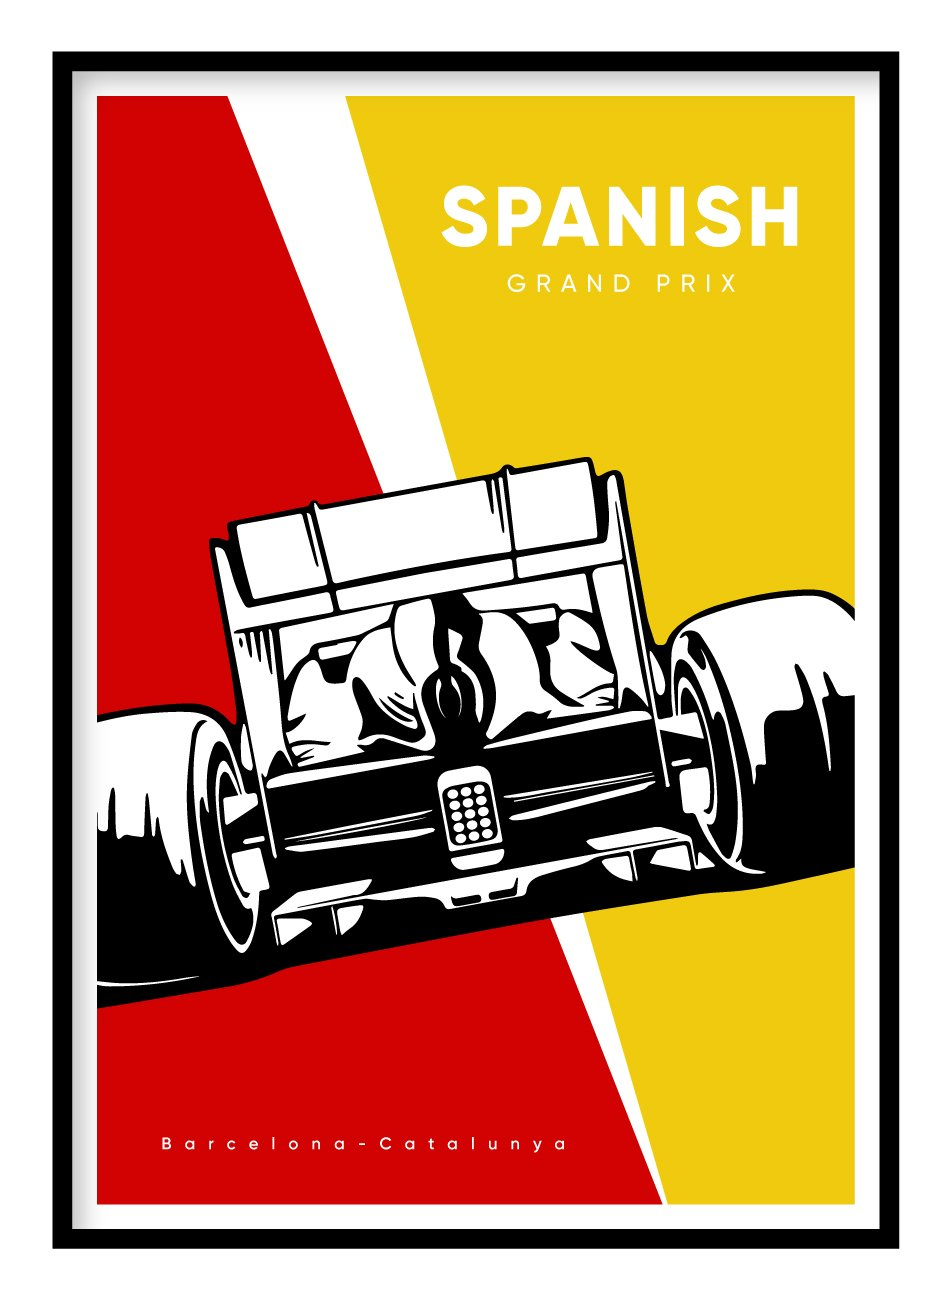 Spanish Grand Prix Poster Hidden Prints